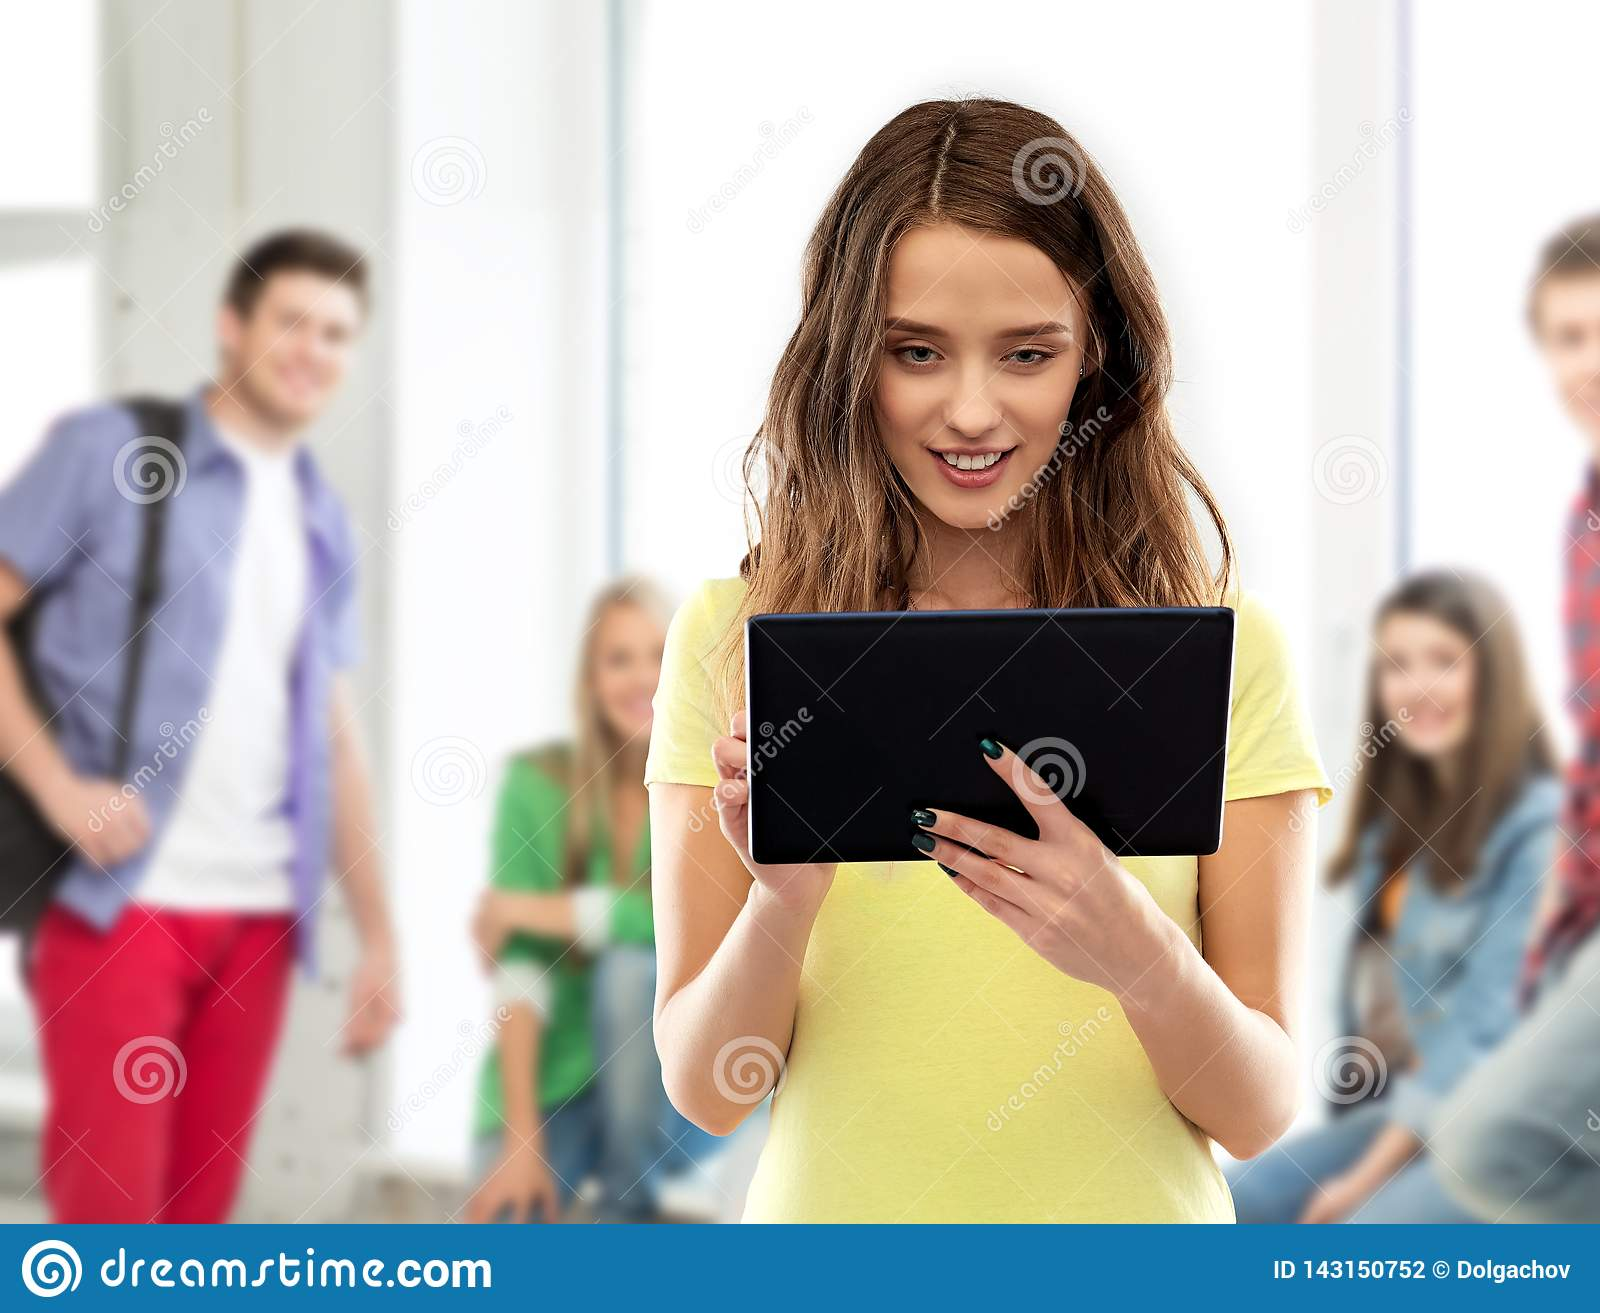 Young woman or teenage girl using tablet computer